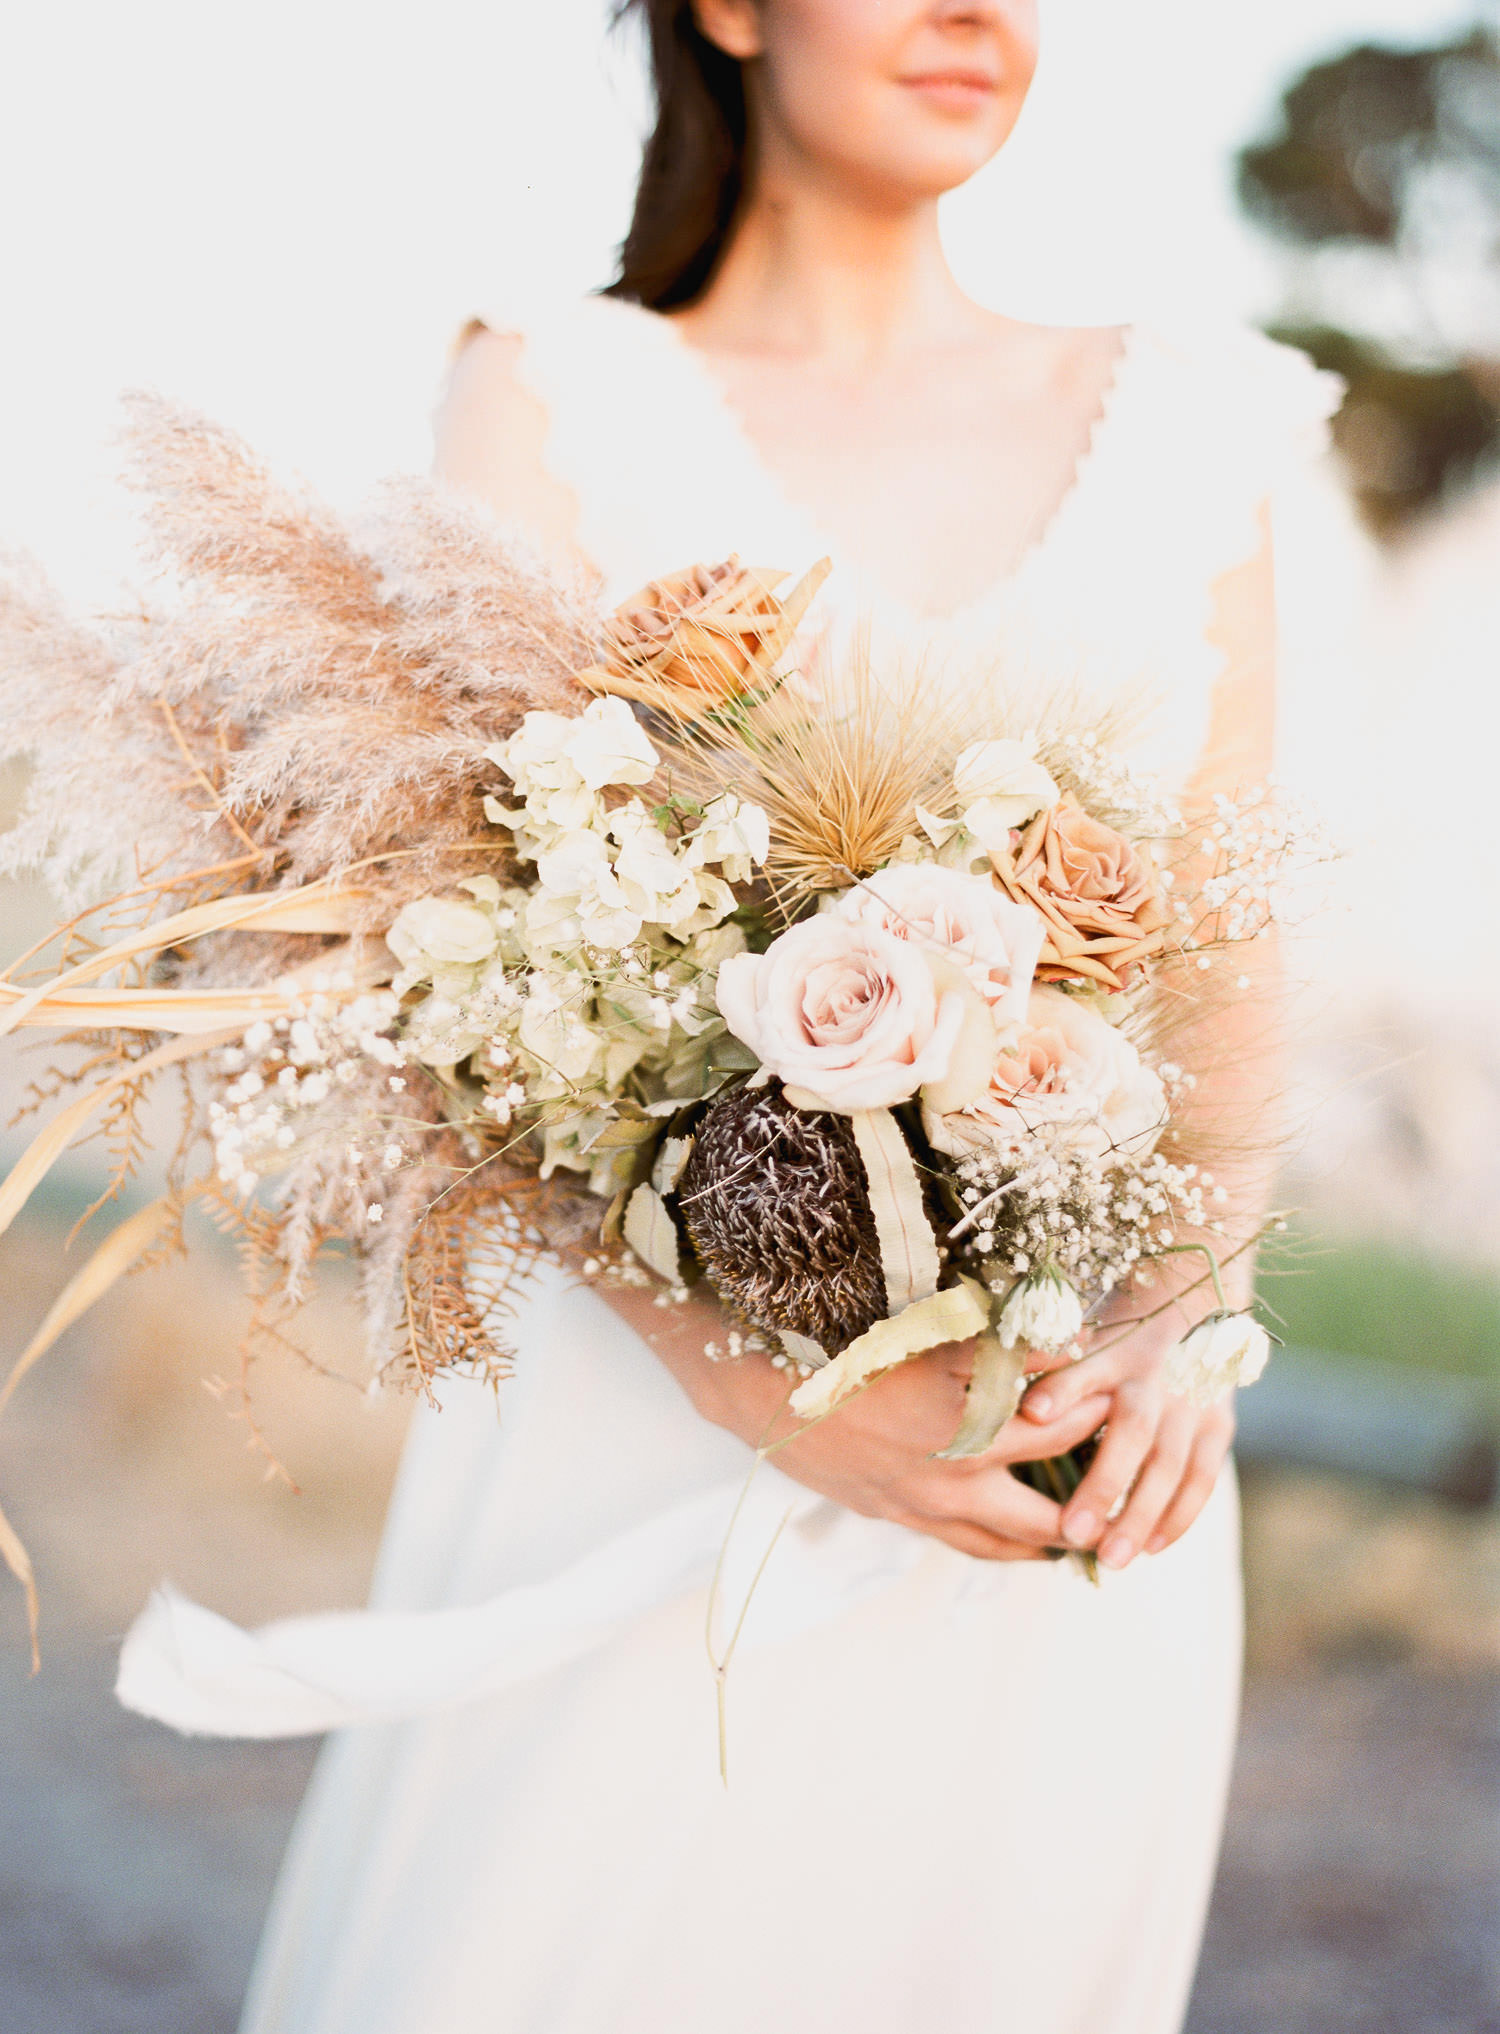 Beautiful bouquet by Rose and Bud for elopement in Perth